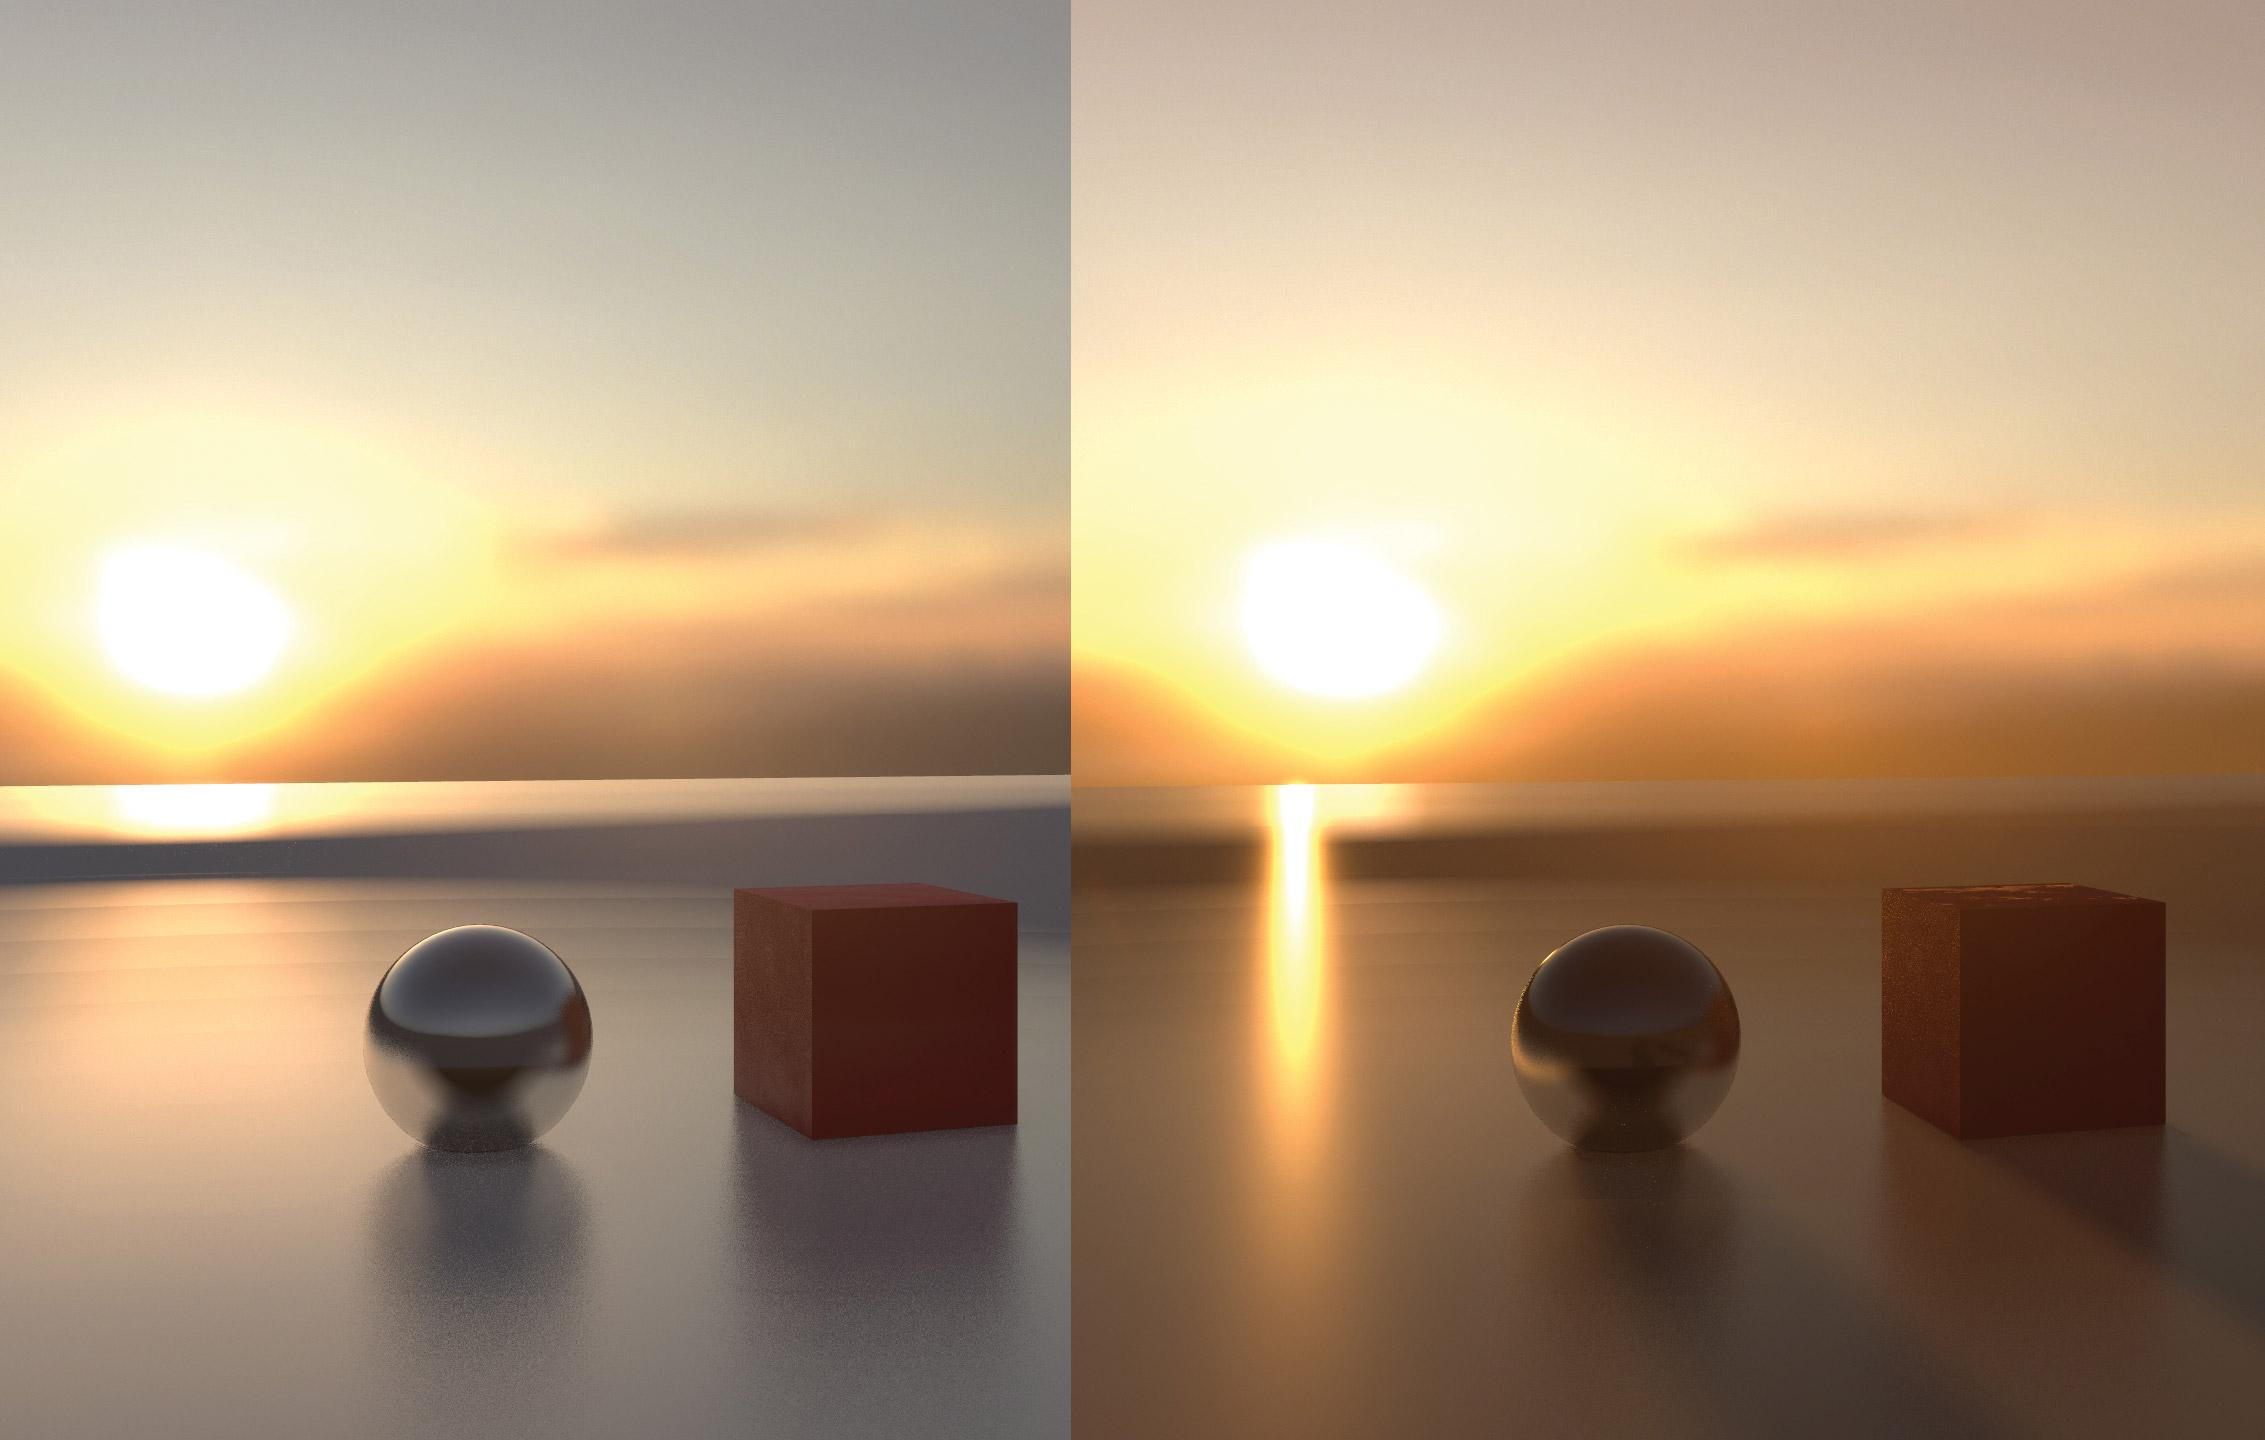 A pair of spheres and cubes in a sunset scene to demonstrate lighting